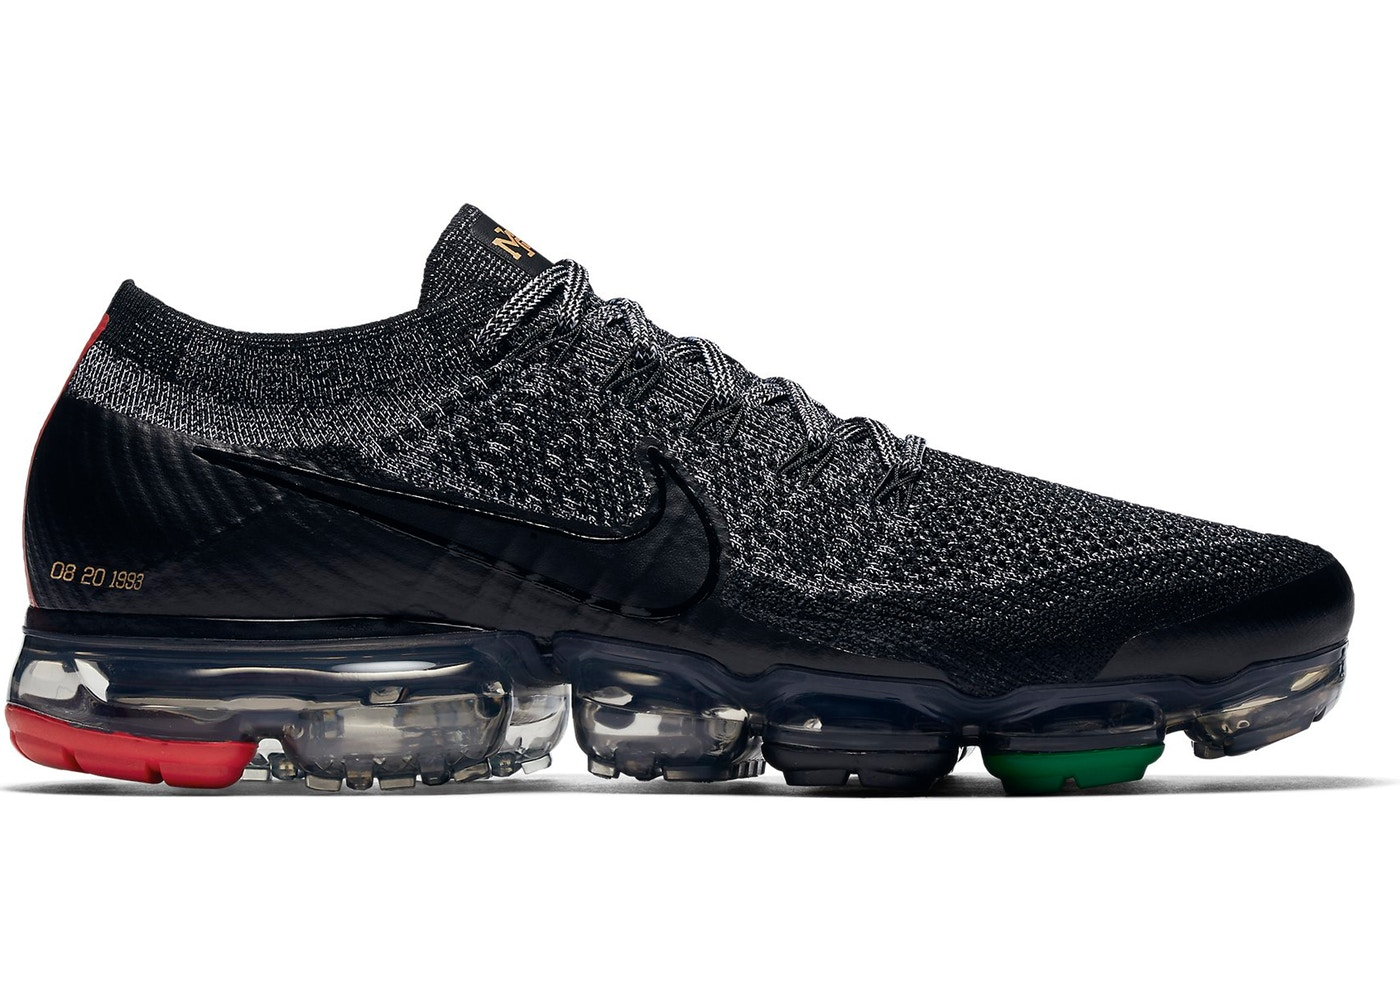 36b67f9591b5c Air VaporMax Black History Month (2018) - AQ0924-007